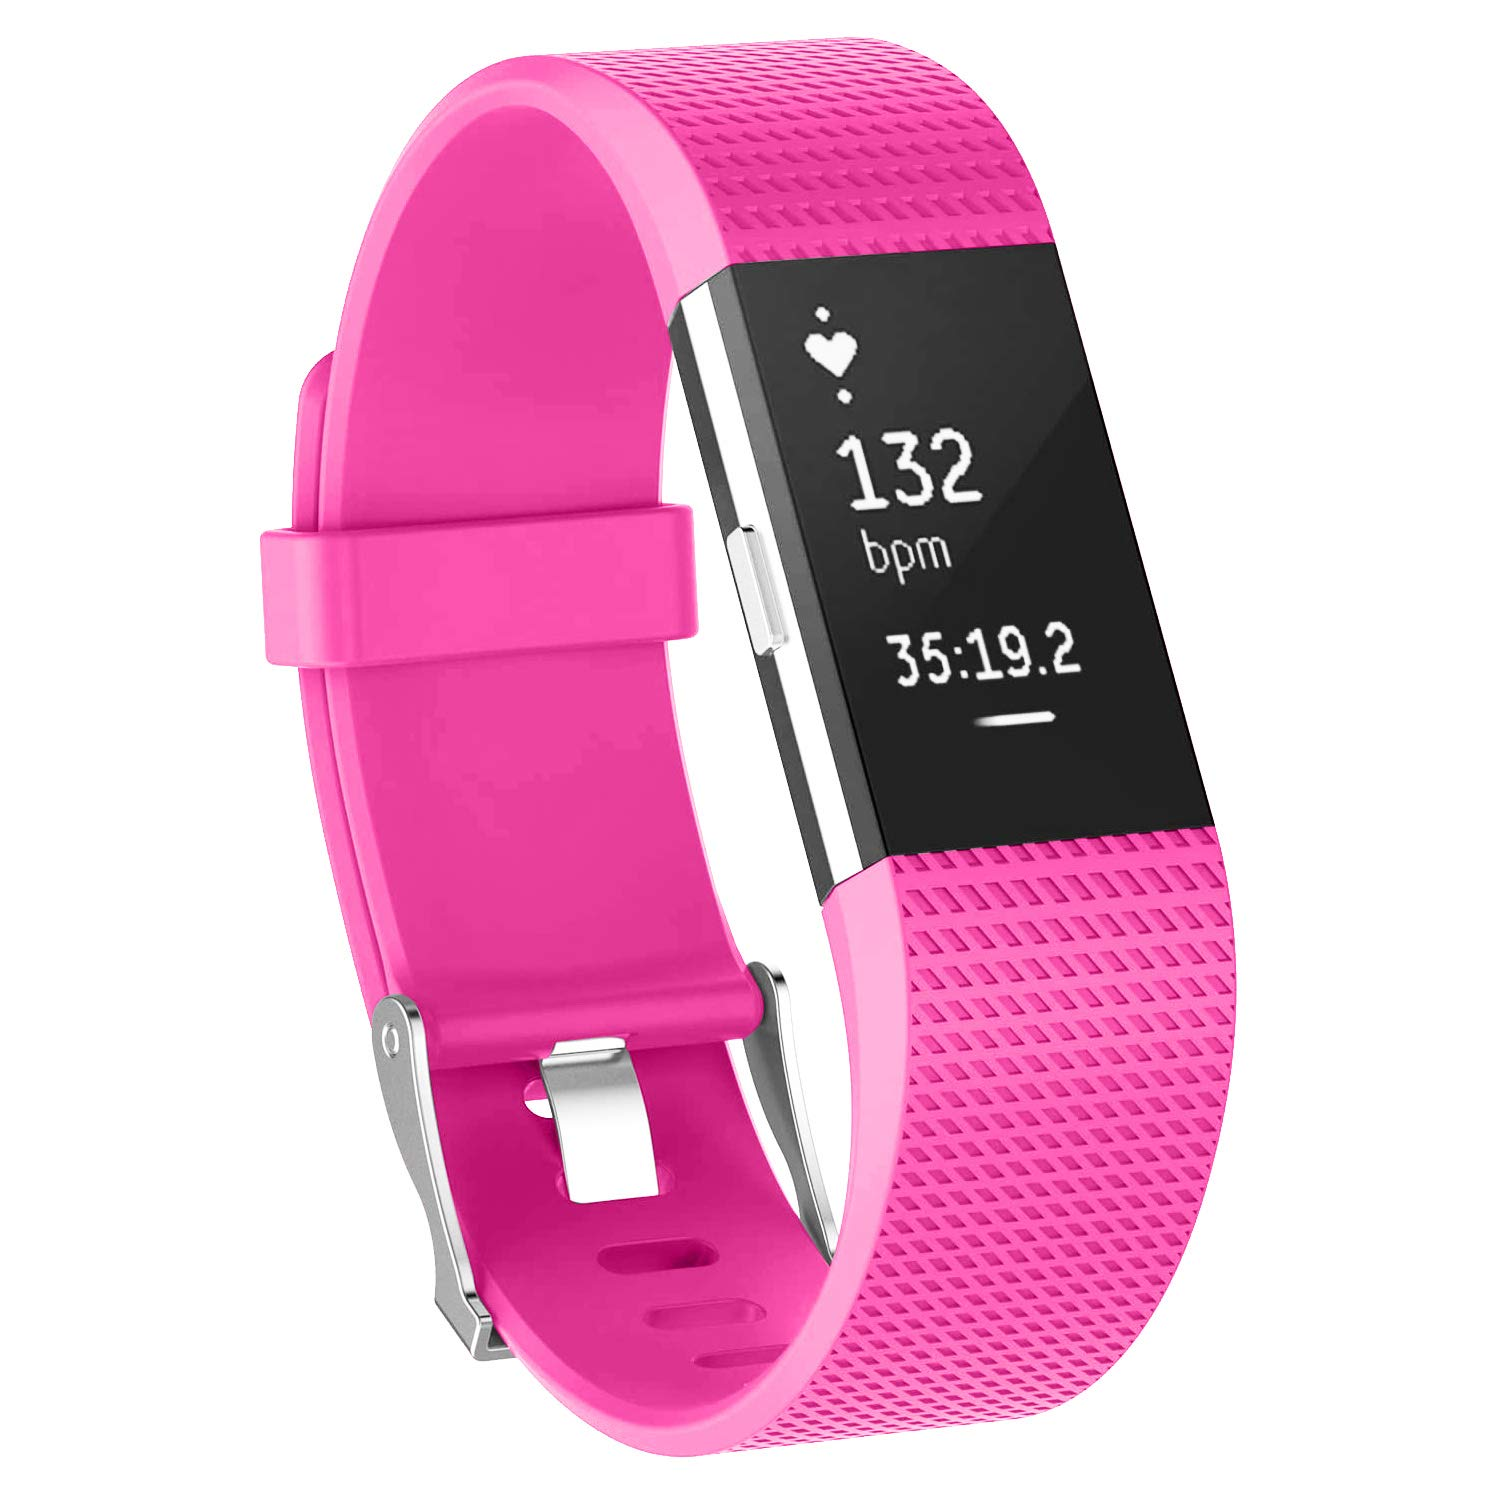 YOUKEX Sport Bands Compatible with Fitbit Charge 2, Classic & Special Edition Replacement Wristbands for Fitbit Charge 2, Women Men